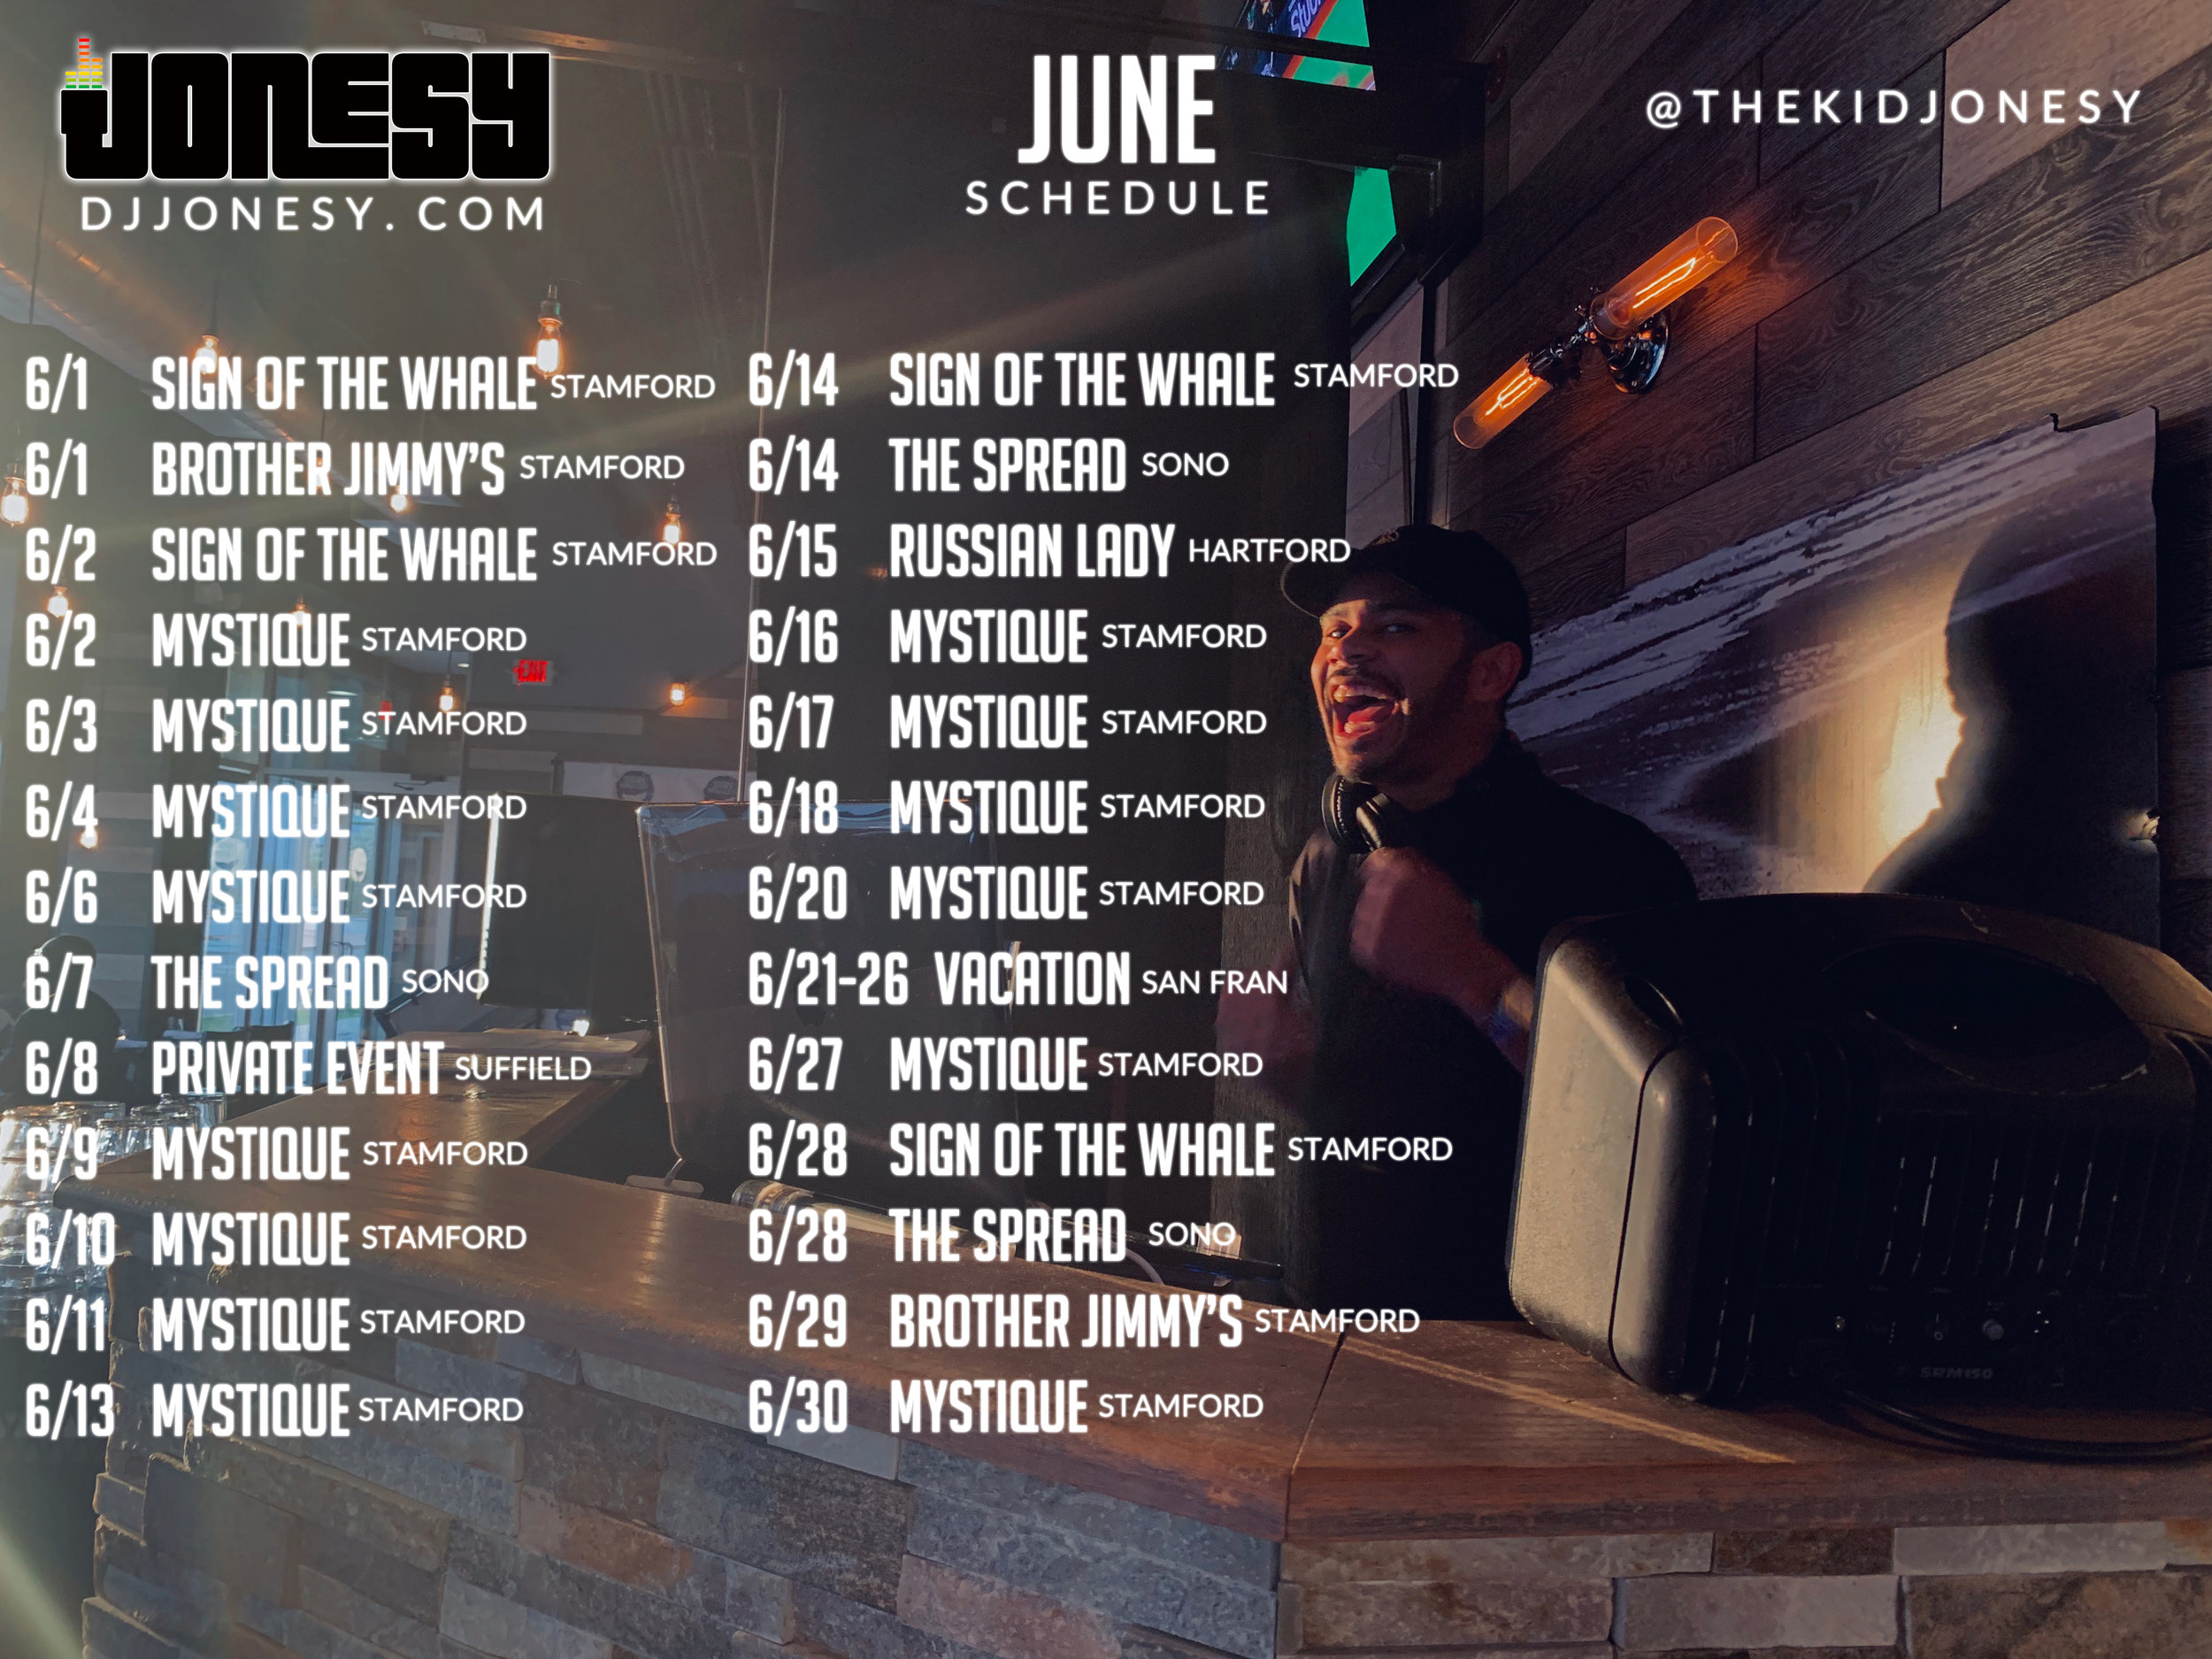 jonesy-JUNE2019-schedule.jpg